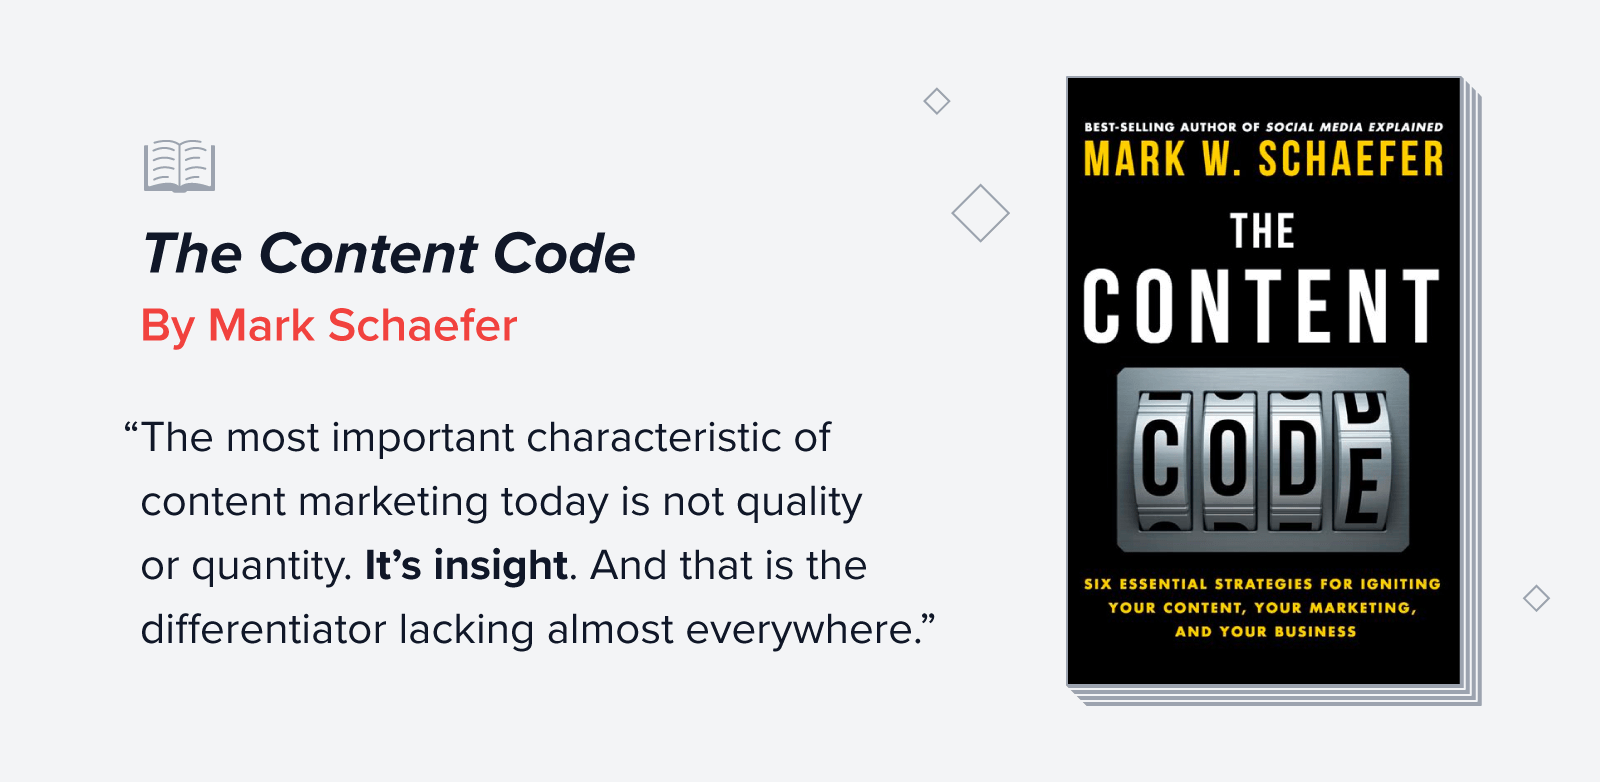 The Content Code quote